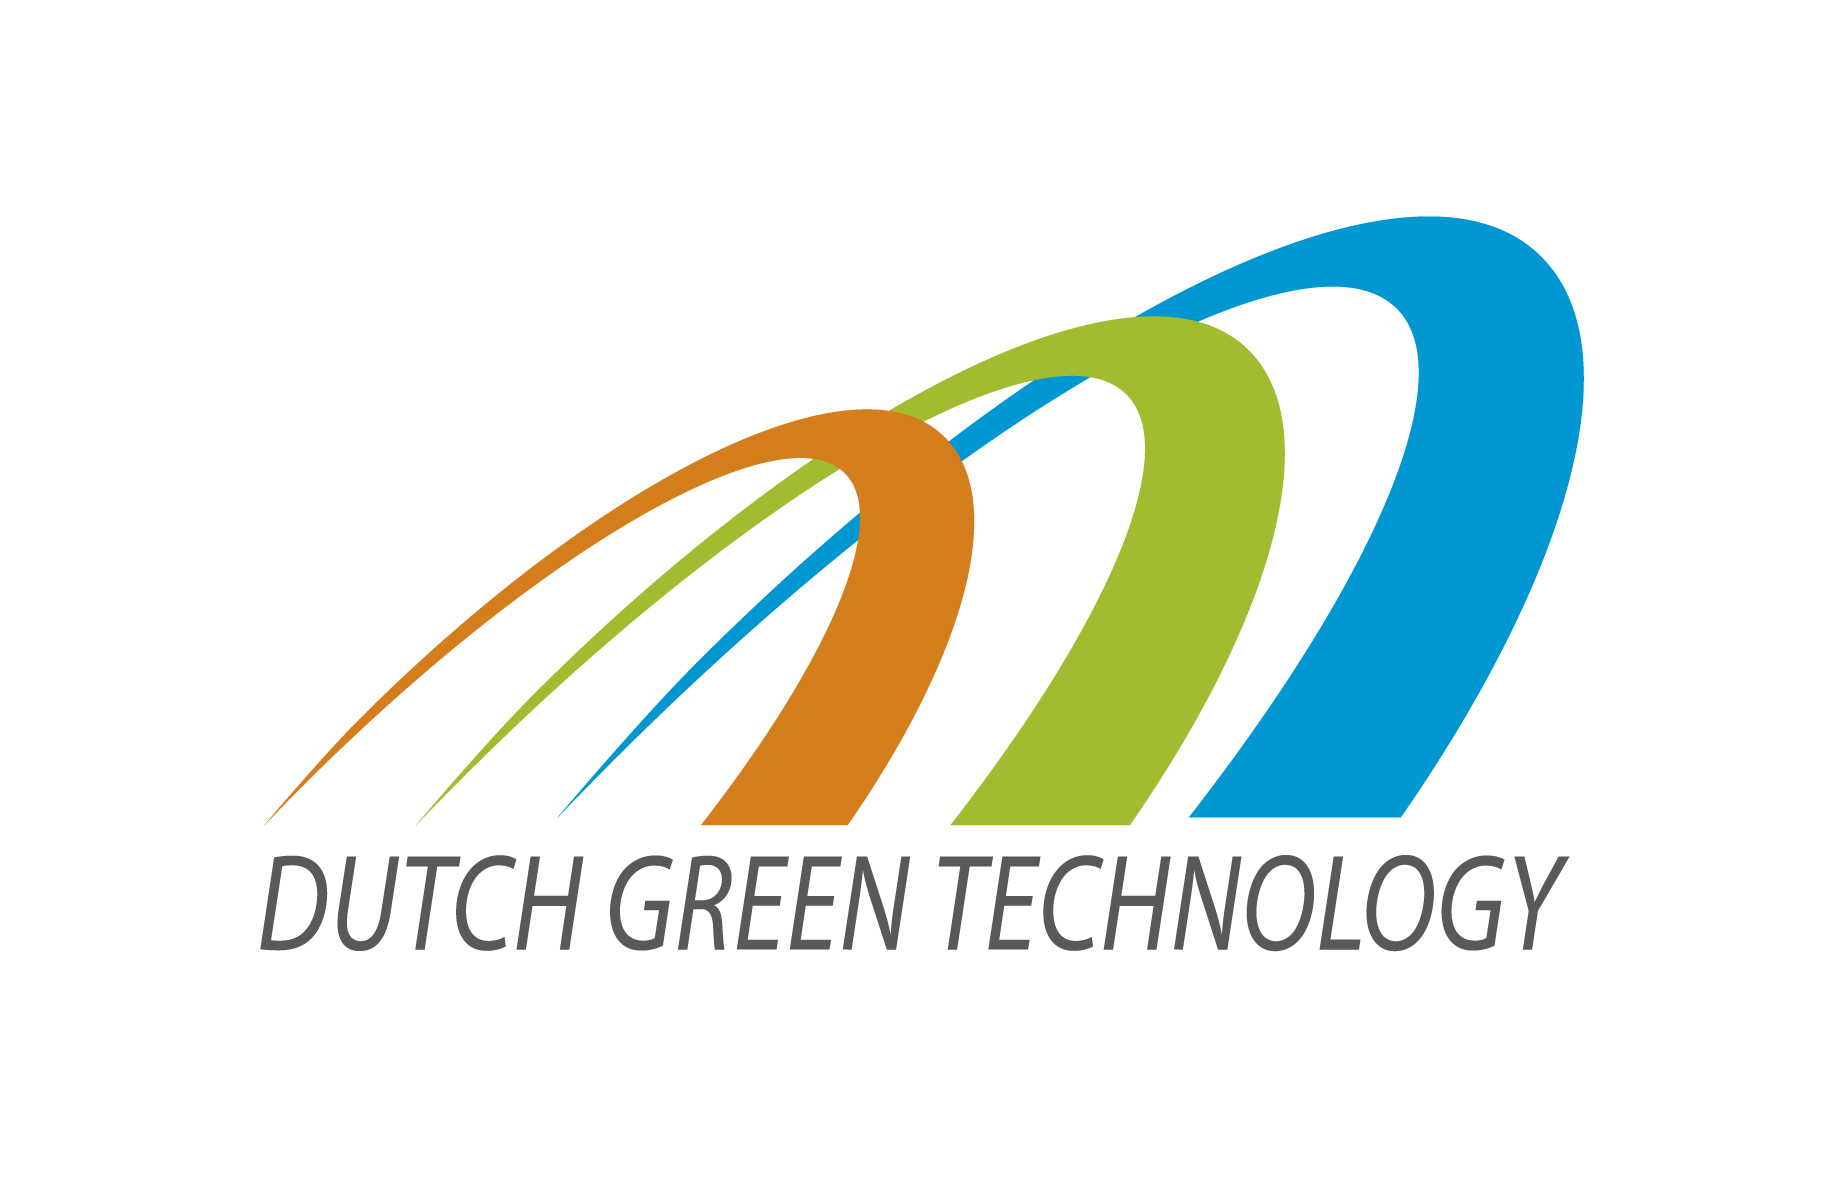 Dutch Green Technology